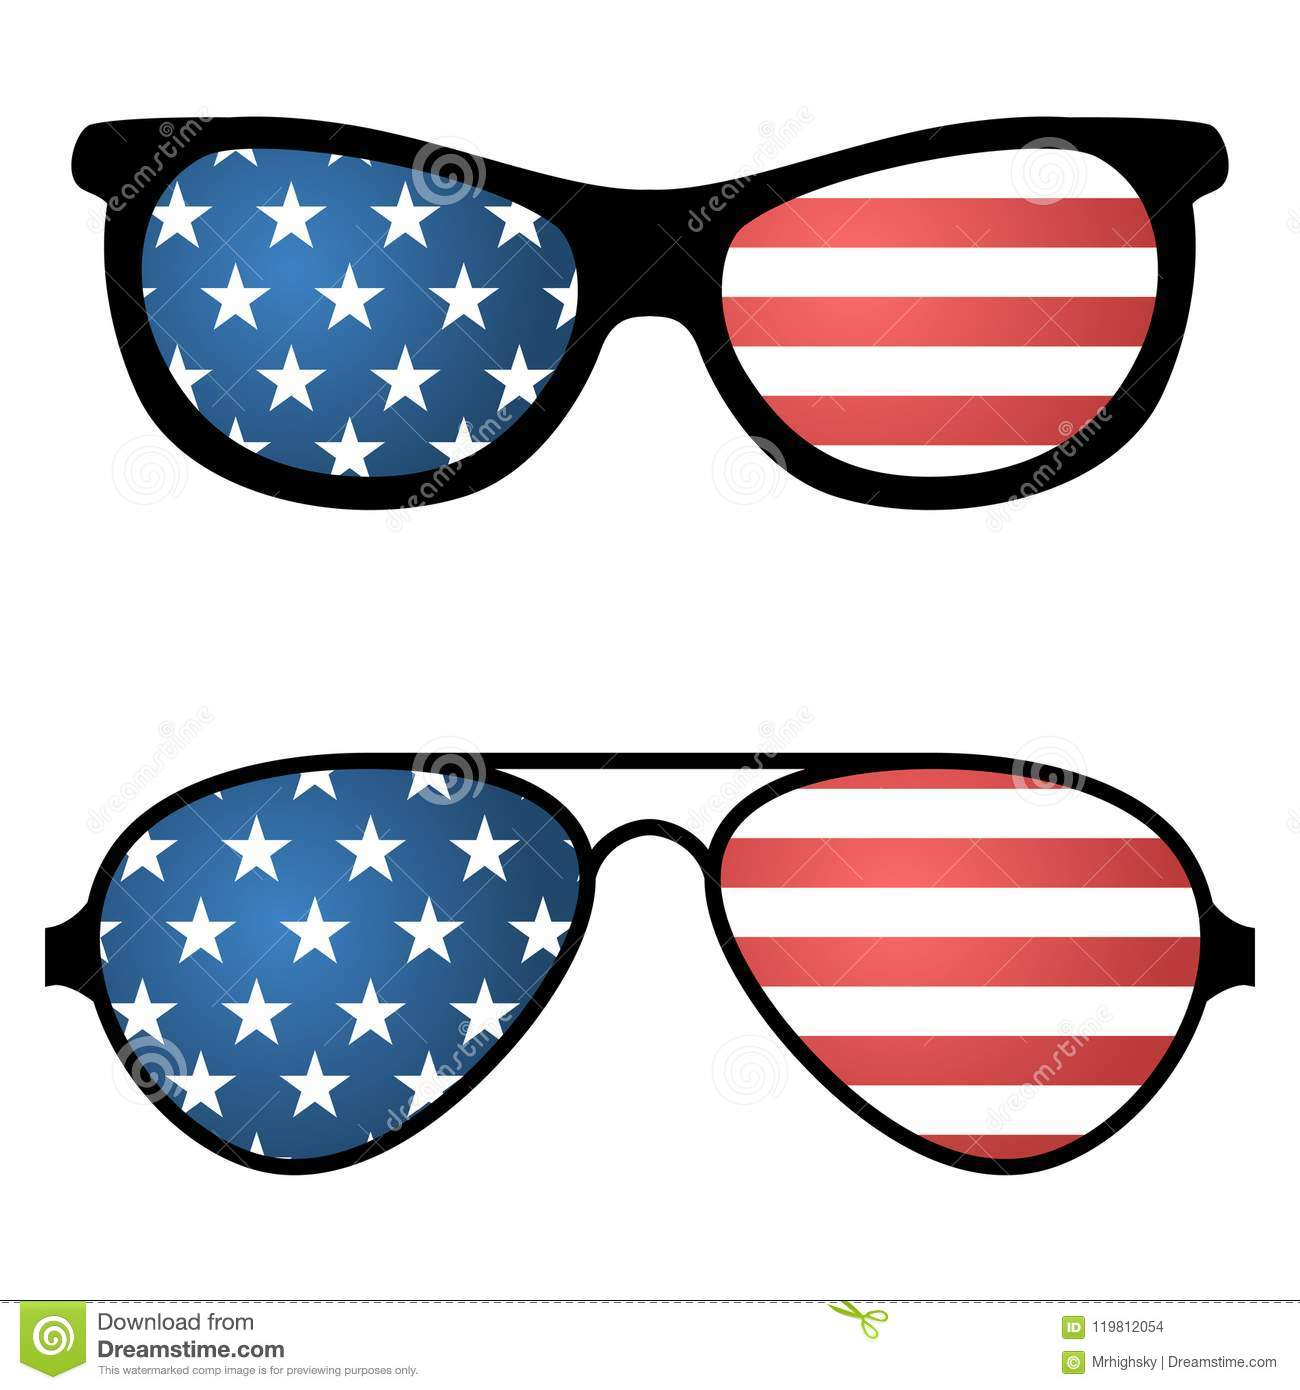 95a3be8b2f8 Patriotic sunglasses with american flag stock vector illustration jpg  1300x1390 American flag sunglasses